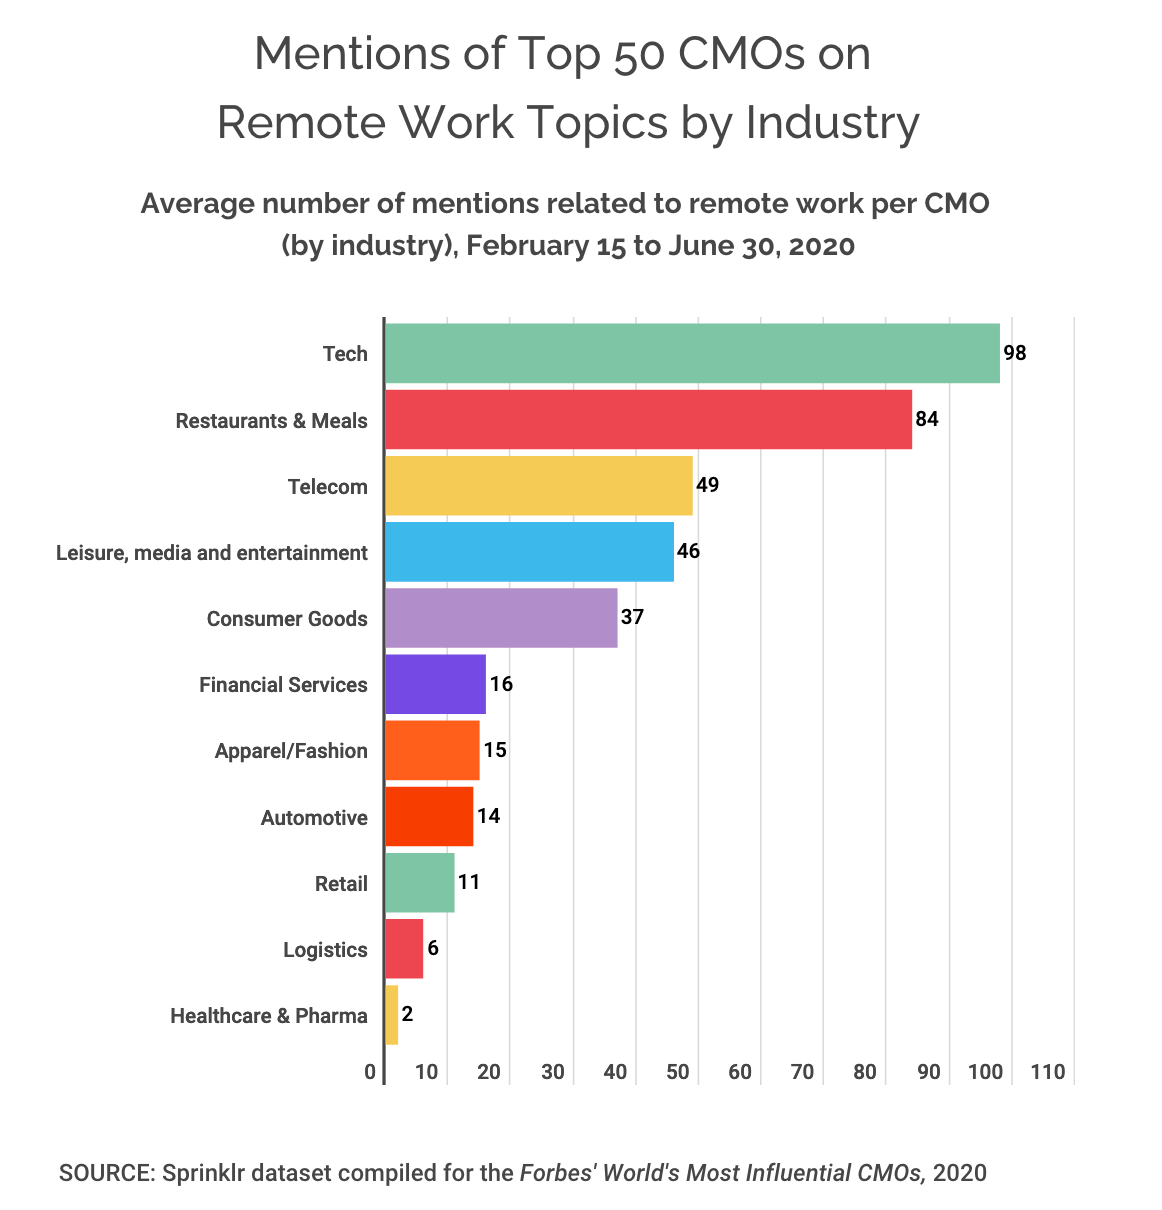 Chart showing which industries' CMOs get mentioned most frequently in relation to remote work, led by Tech and Restaurants.